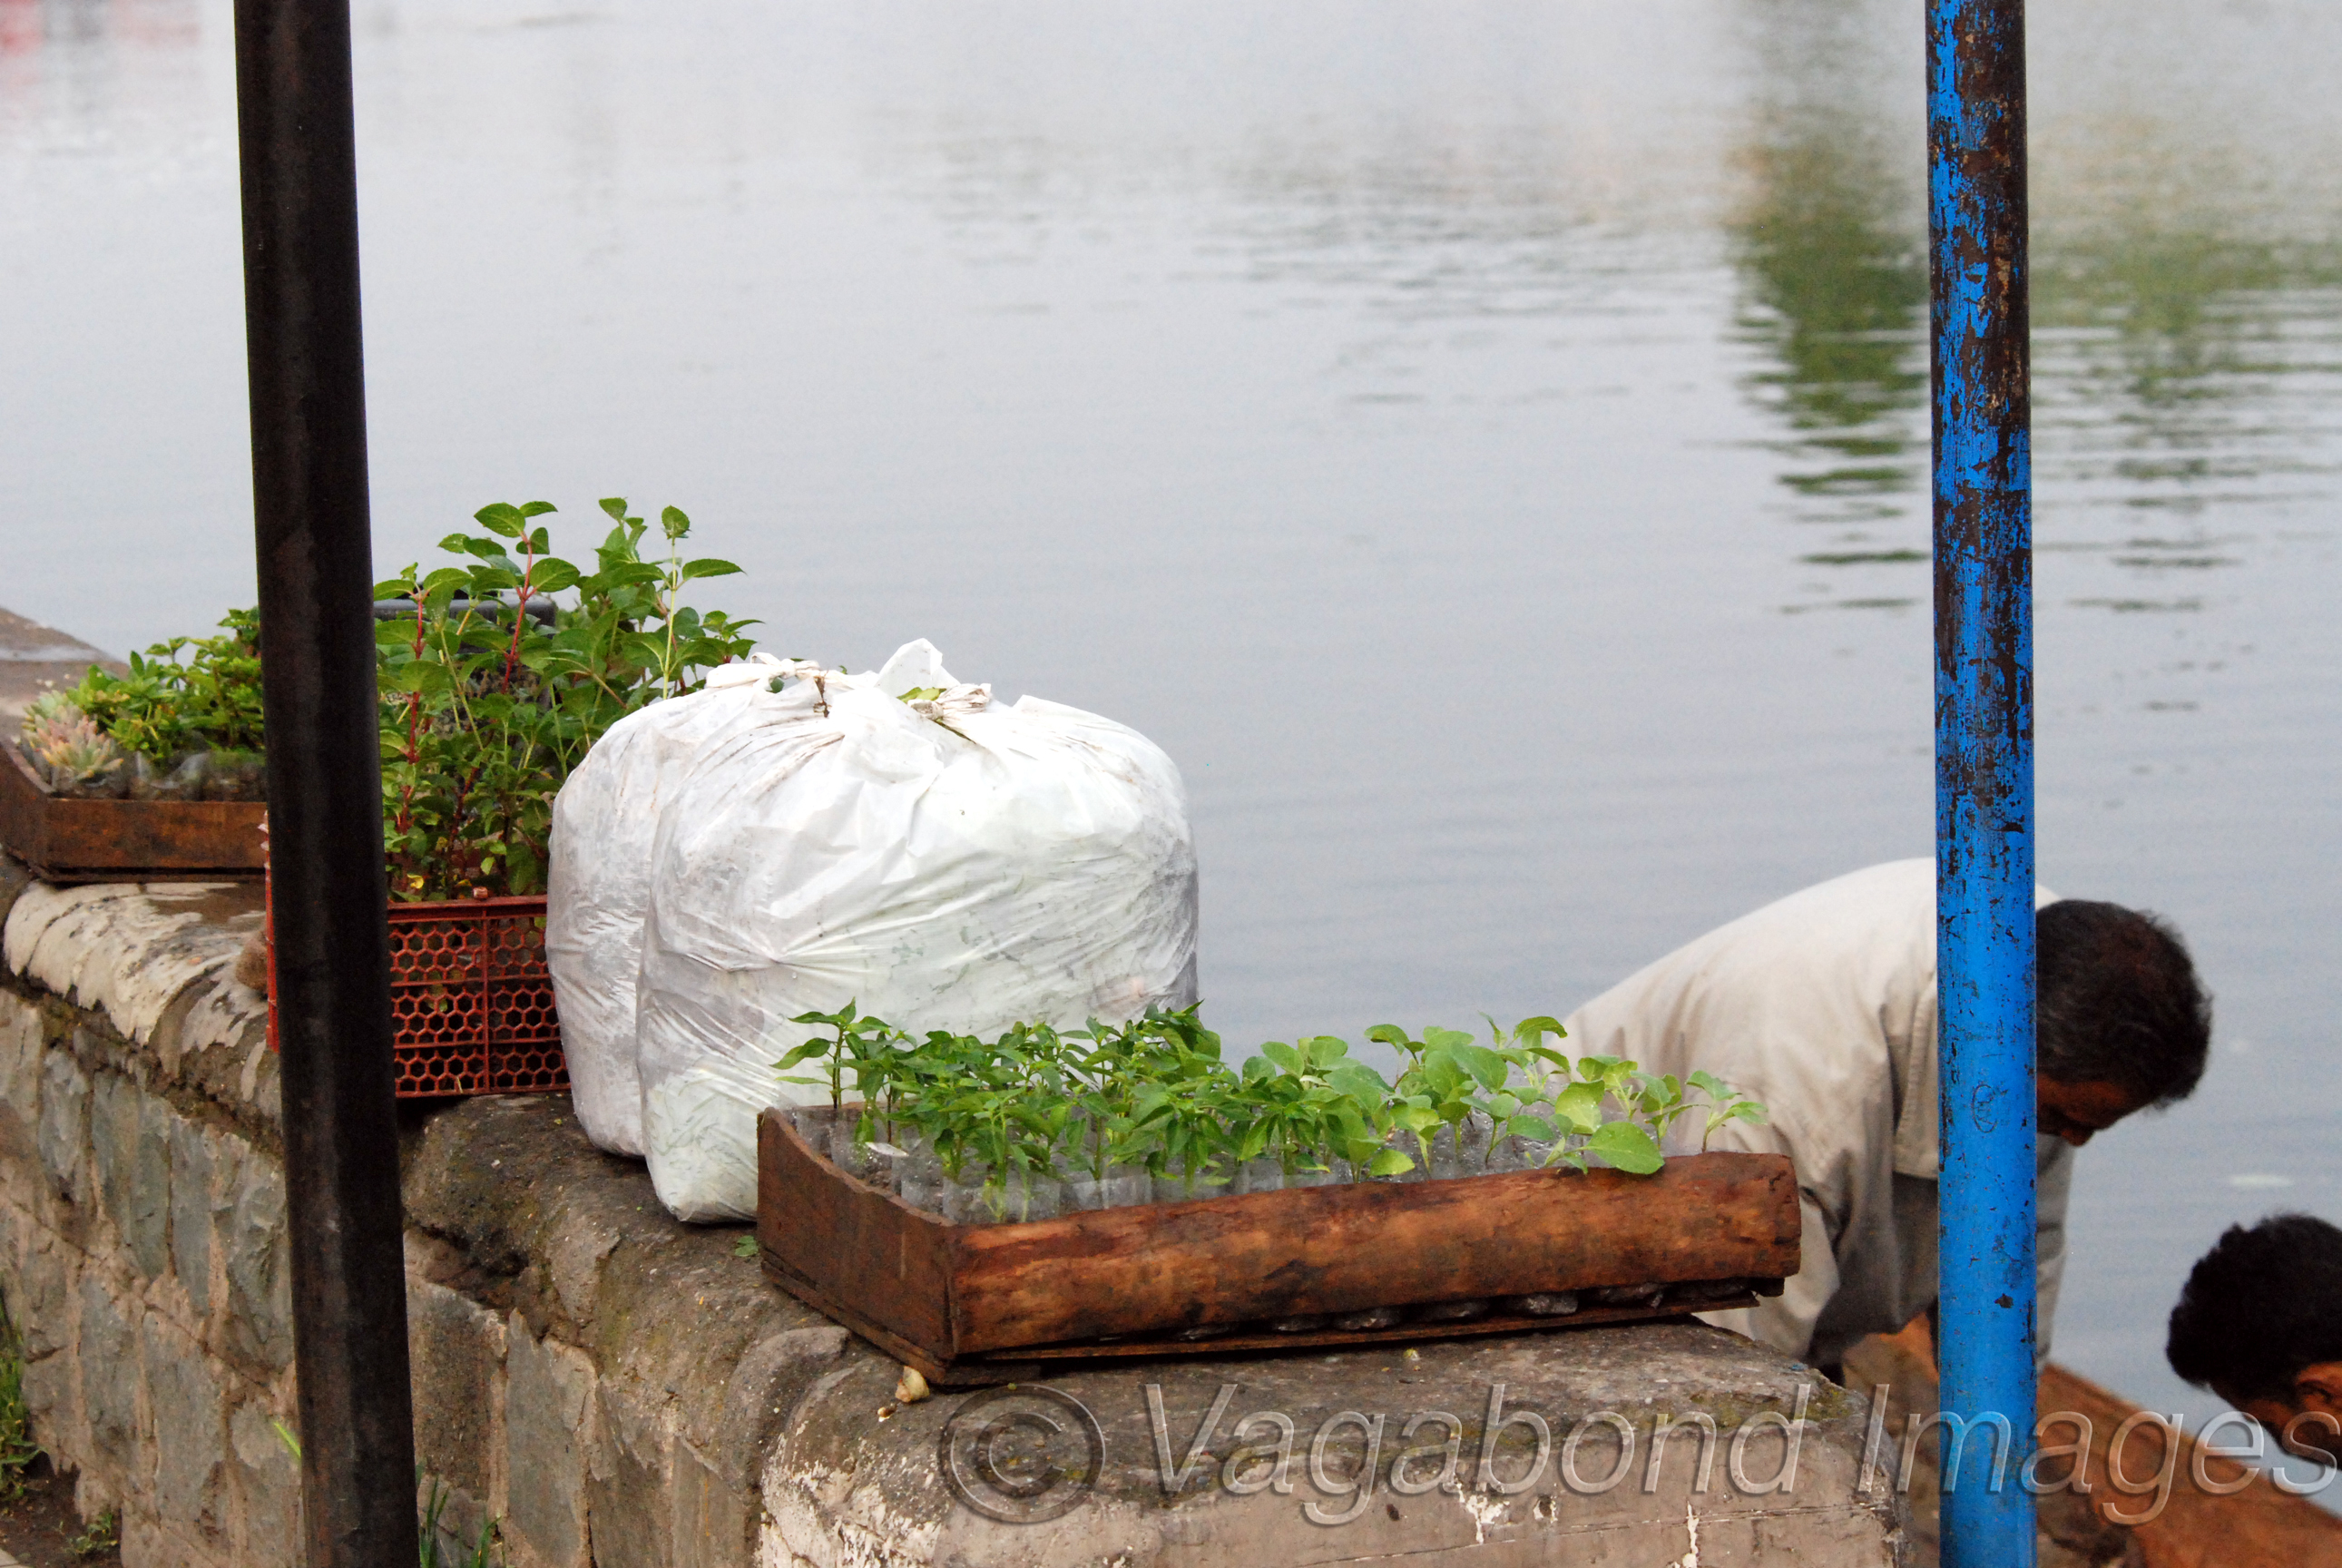 There are many nurseries and floating gardens in the Dal. Here you see saplings being taken to some other place and to houseboats for their private gardens